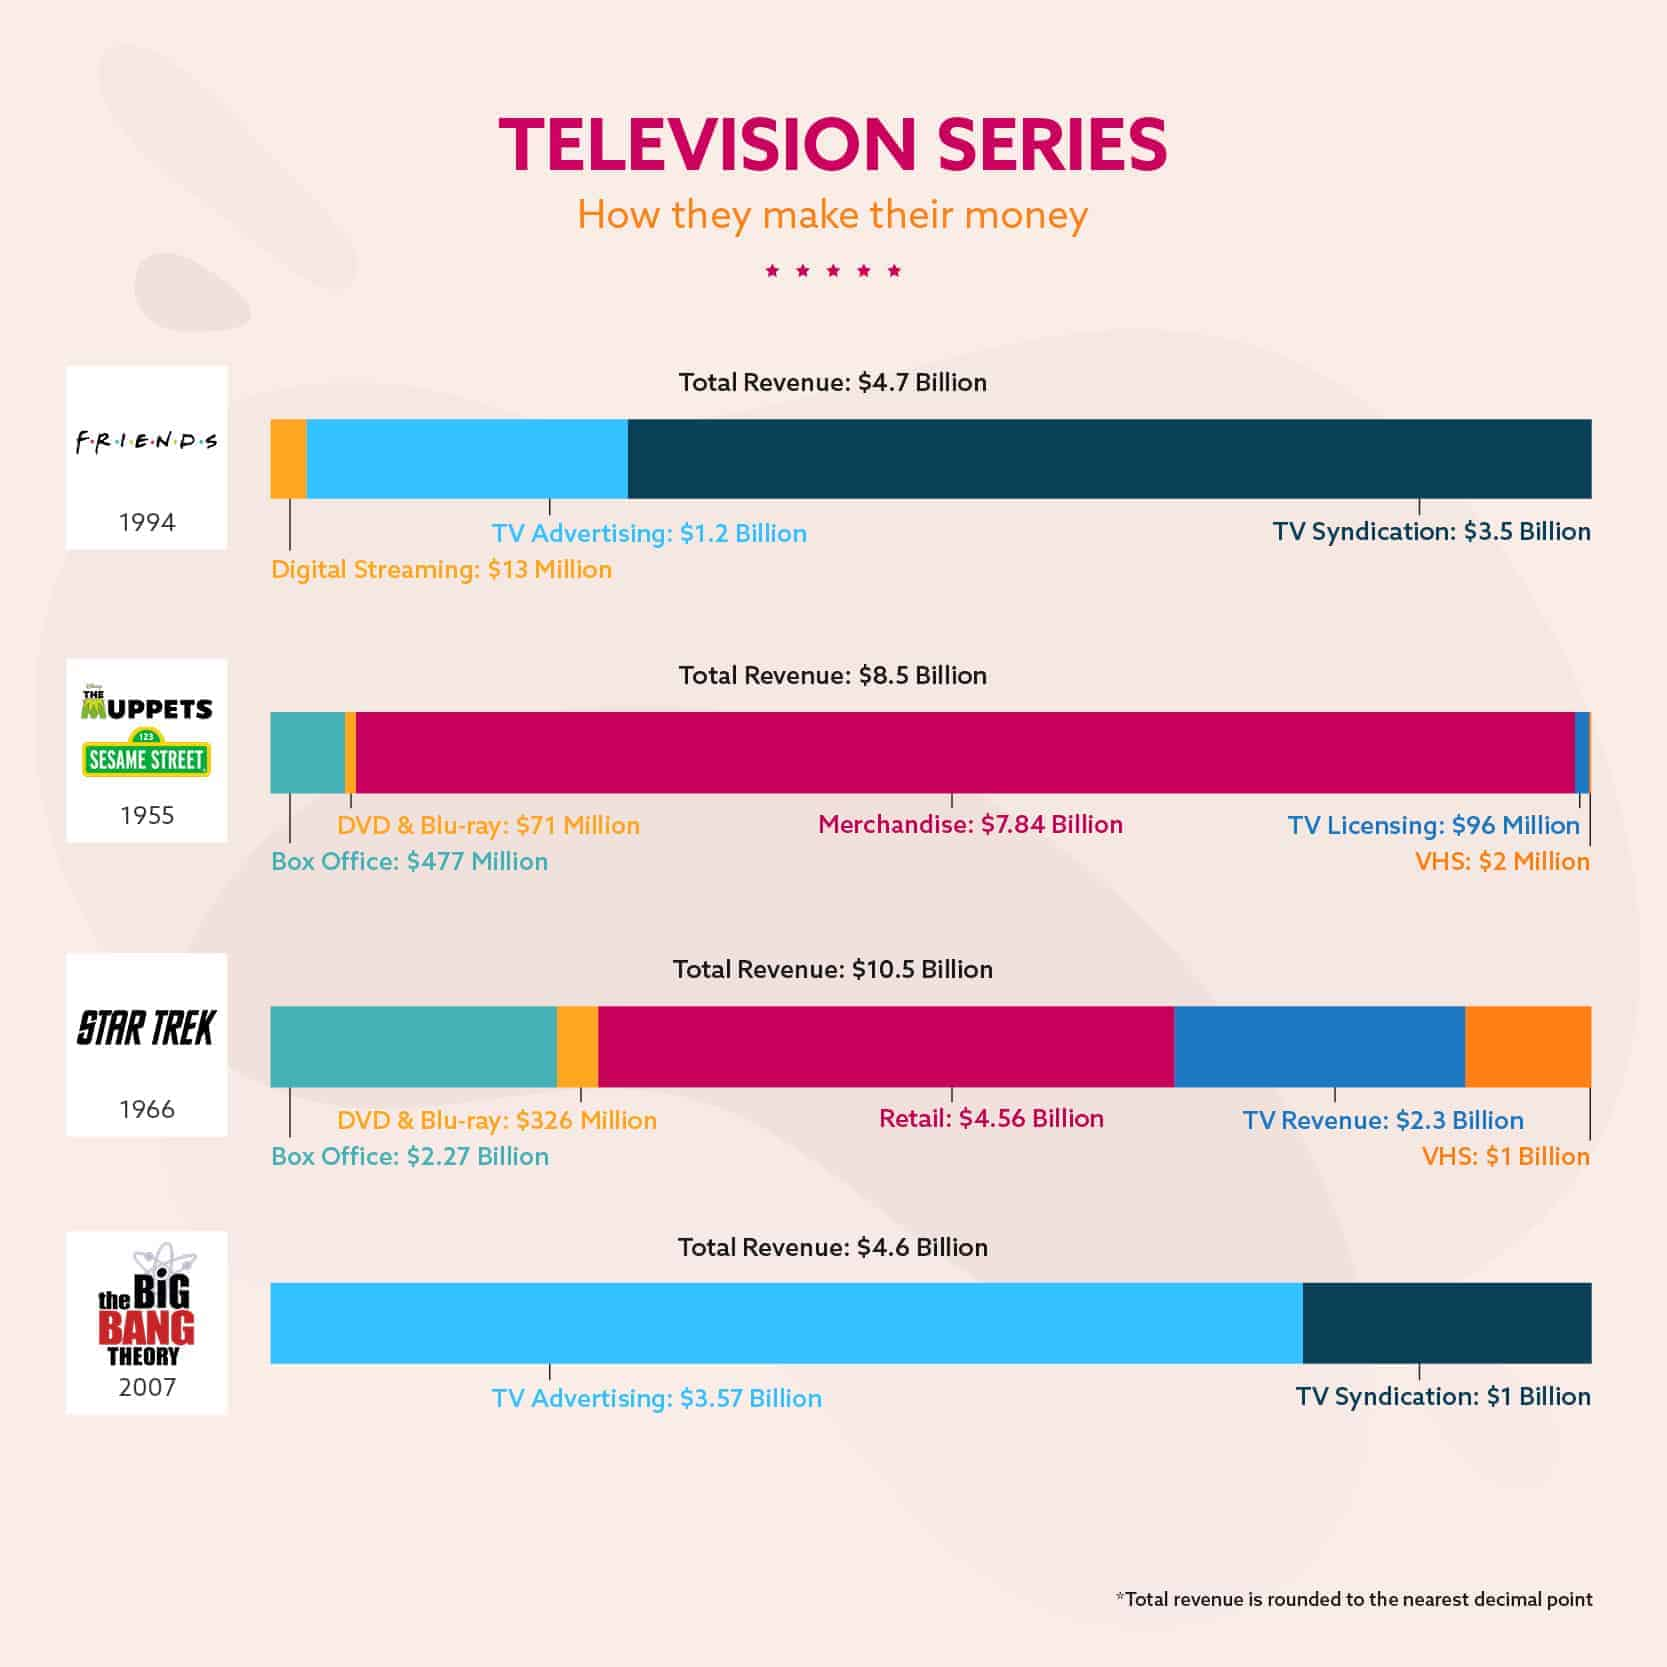 Television Series – How They Make Their Money